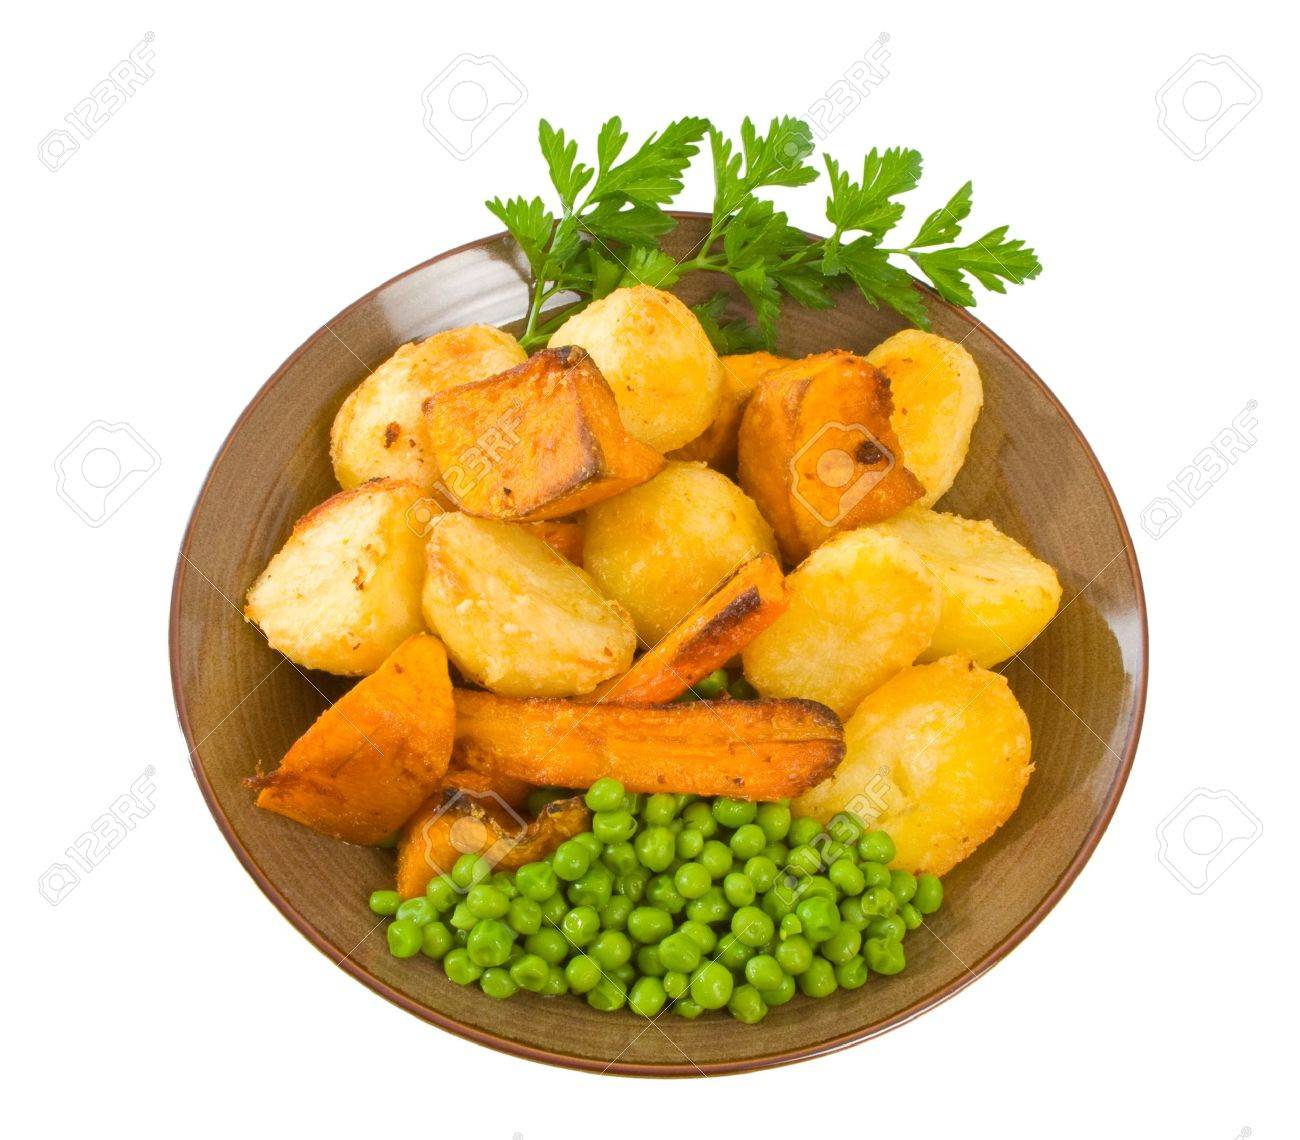 Crisp roast vegetables including potatoes, pumpkin and carrot with peas. Stock Photo - 5286977